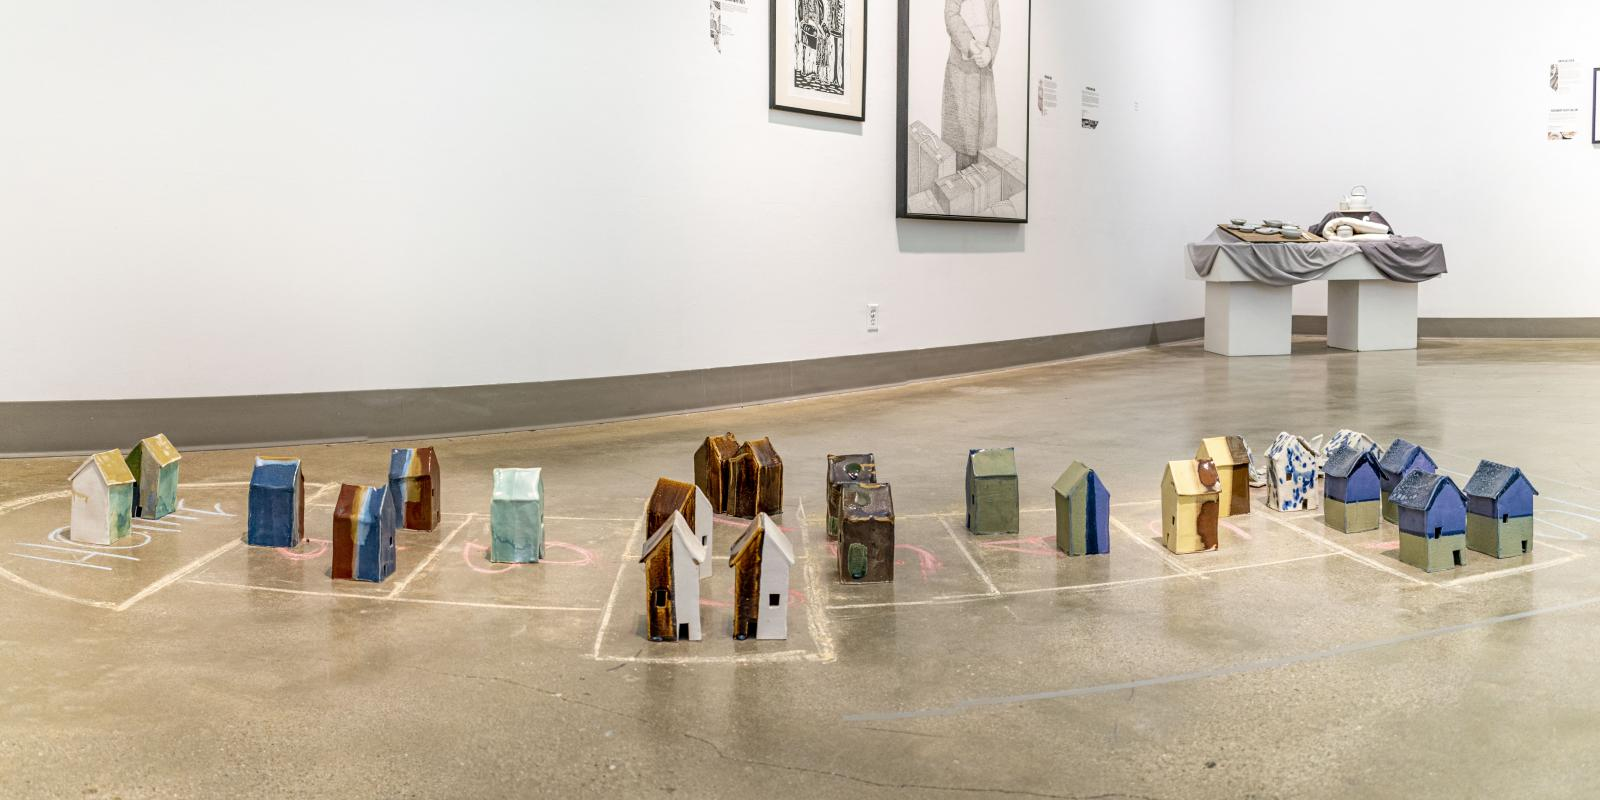 """Installation View, Front of gallery, Exhibition: """"Ink & Clay 44"""", Aug.22, 2019 to Nov. 21, 2019, Curator: Michele Cairella Fillmore, W. Keith & Janet Kellogg Art Gallery, Cal Poly Pomona."""